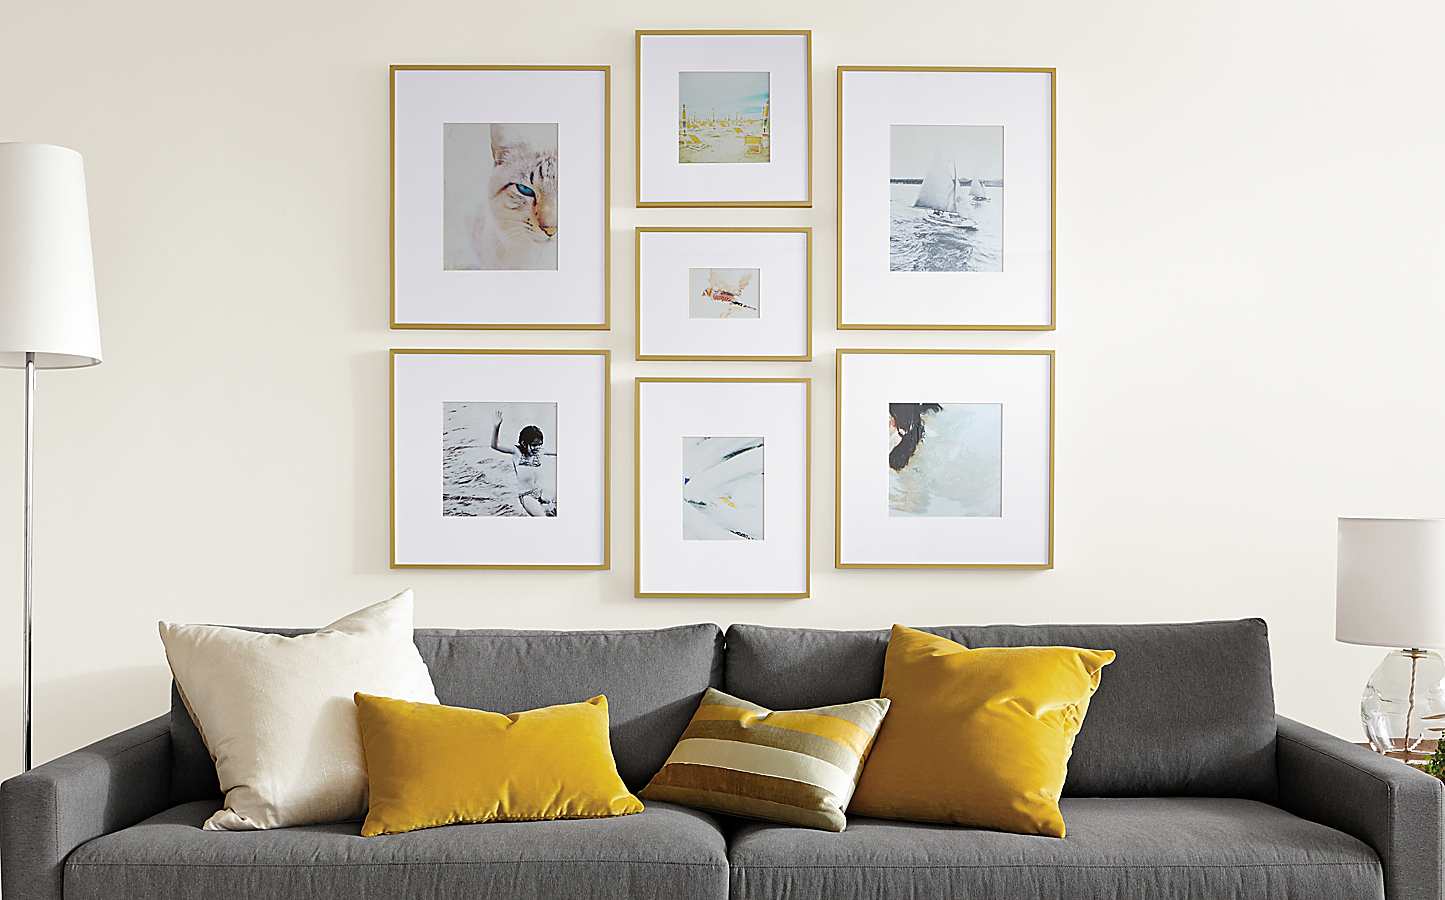 Profile Frame Gallery in Gold